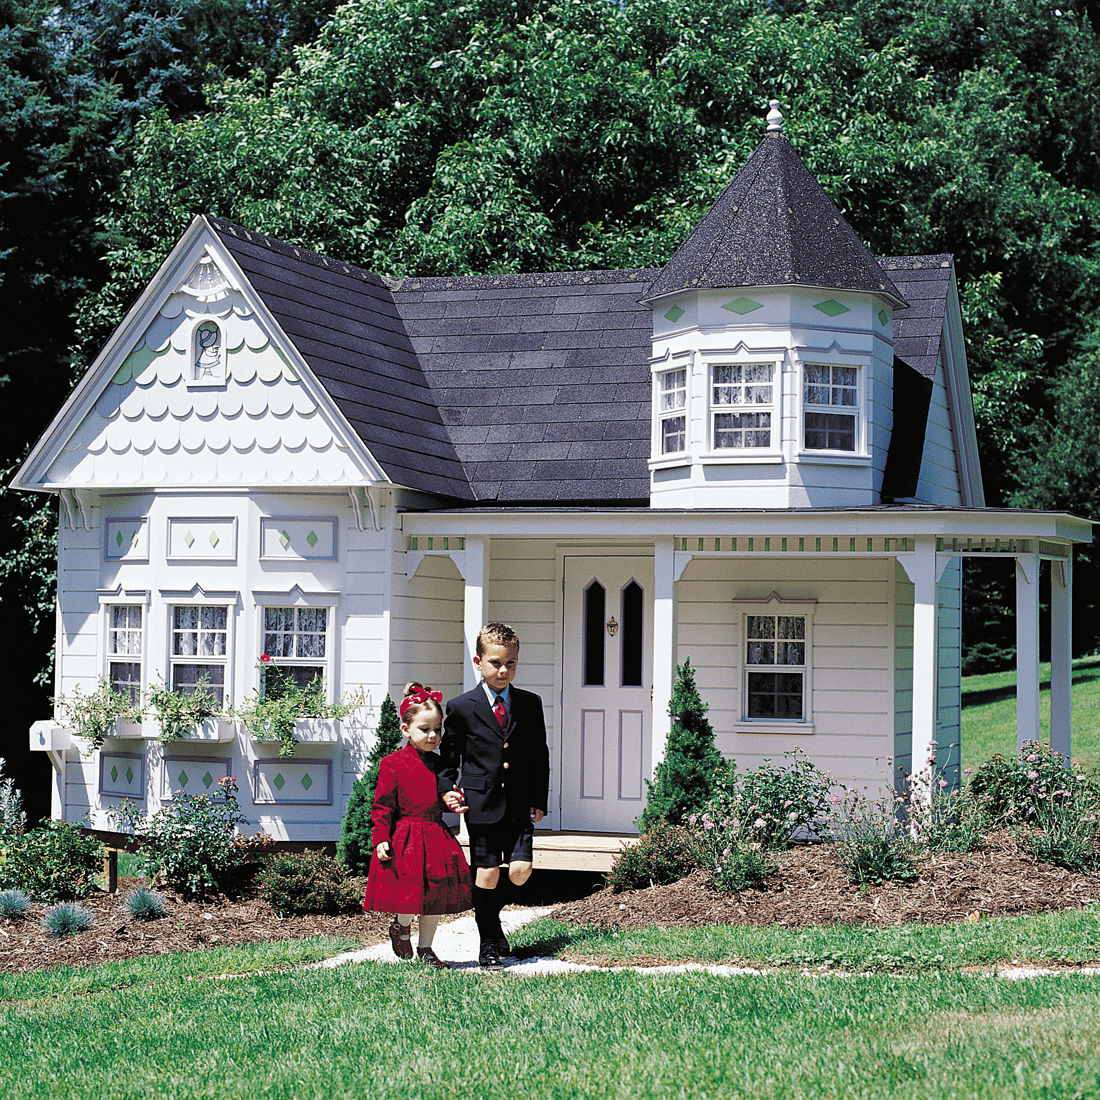 Grand Victorian Our Playhouse For Children Is An Enchanting Play Home